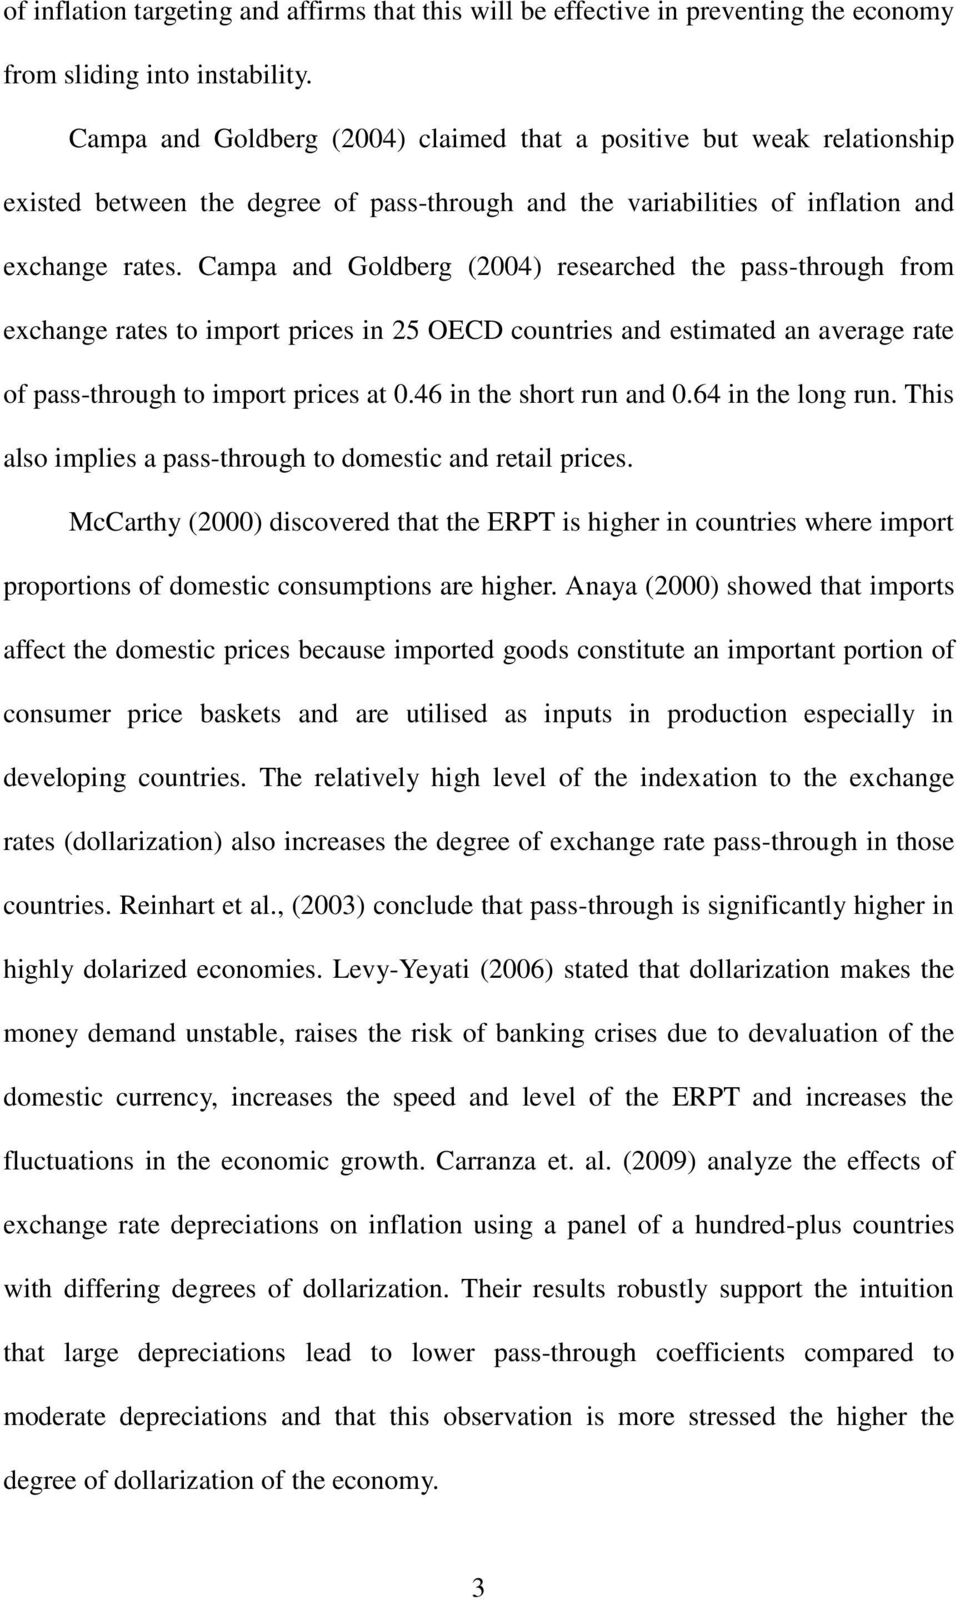 Campa and Goldberg (2004) researched the pass-through from exchange rates to import prices in 25 OECD countries and estimated an average rate of pass-through to import prices at 0.